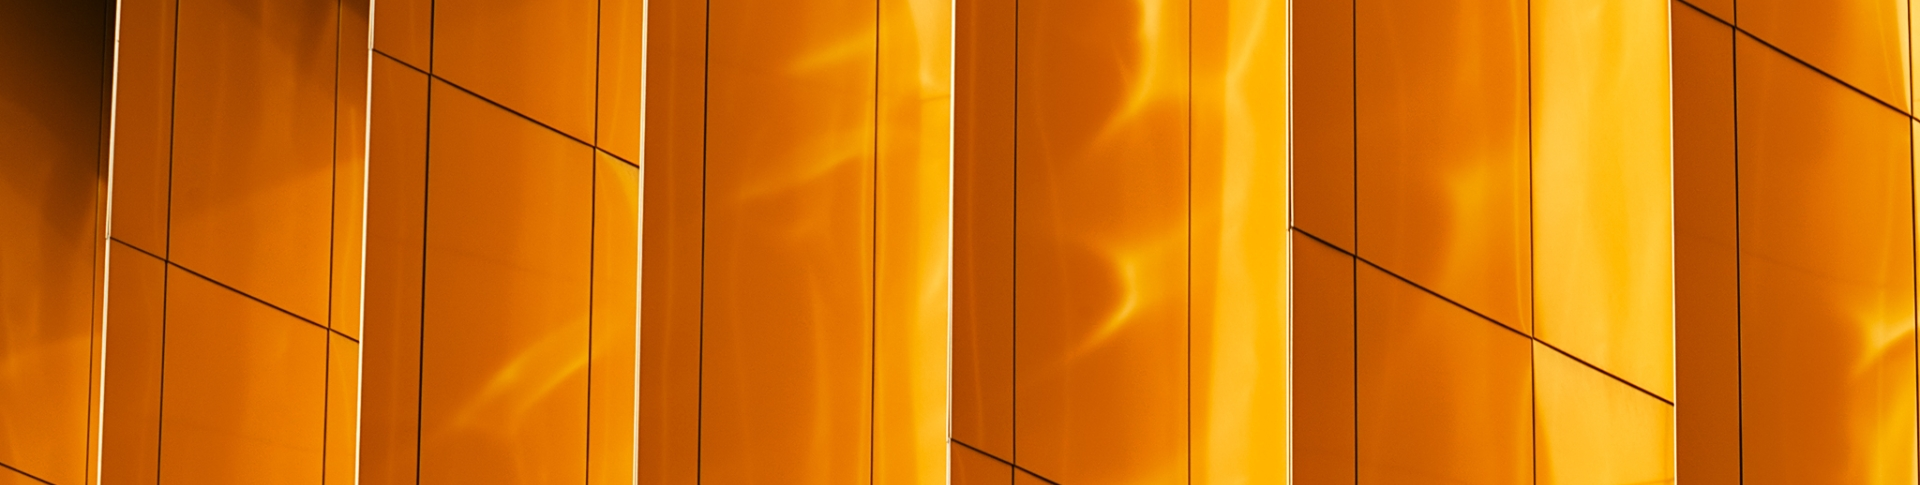 Fond abstrait couleur orange